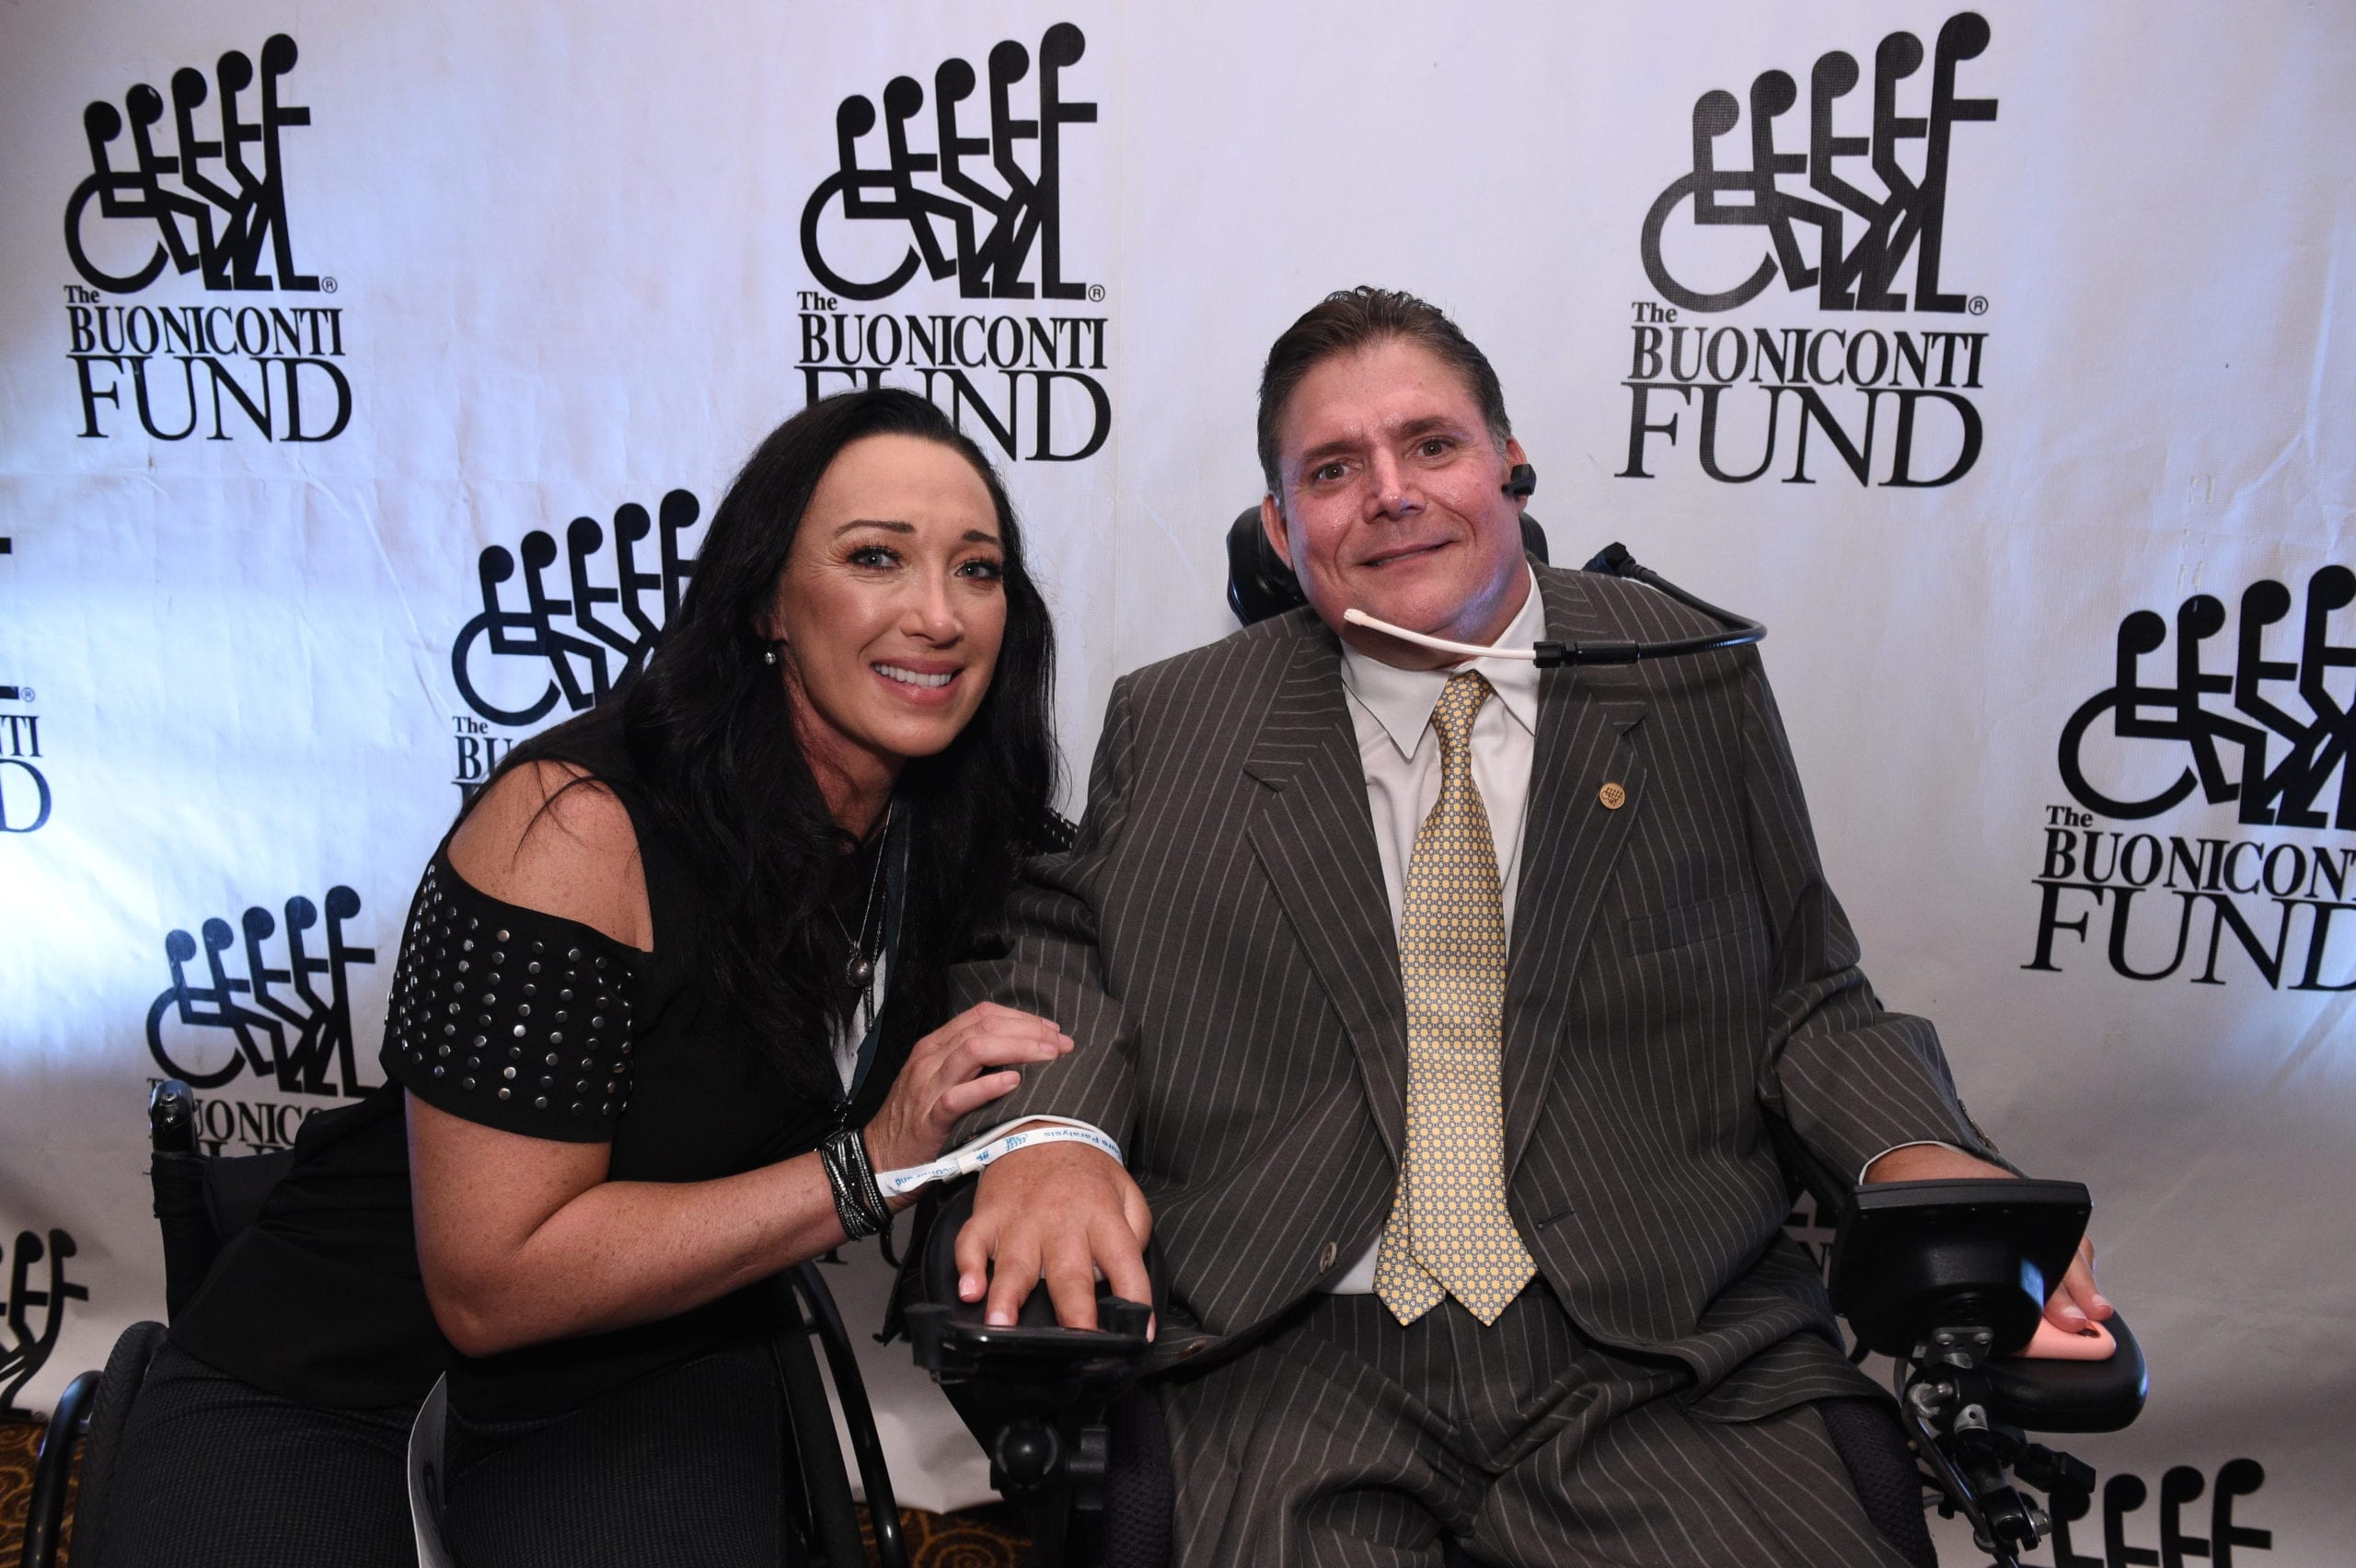 Amy Van Dyken-Rouen with Marc Buoniconti